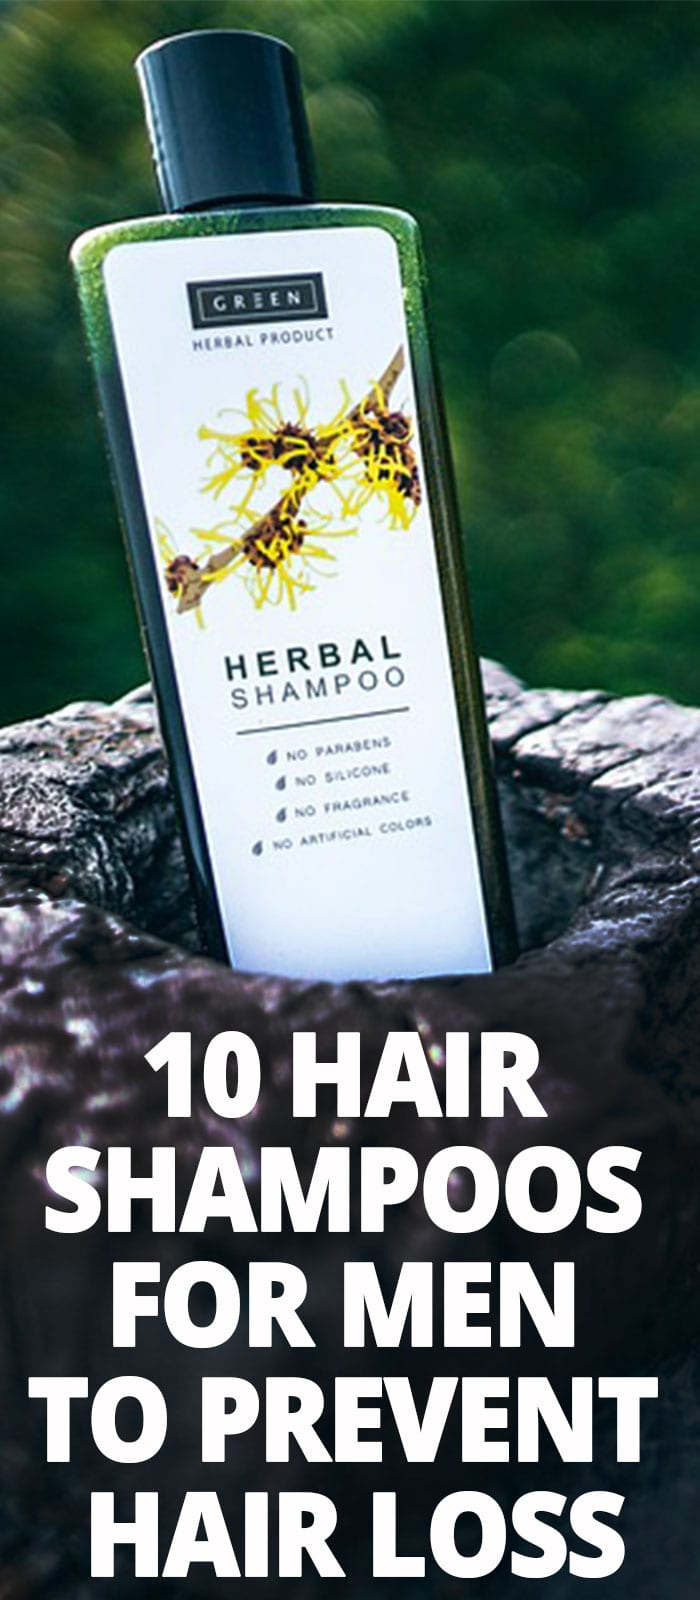 SHAMPOOS-FOR-MEN-TO-PREVENT-HAIR-LOSS